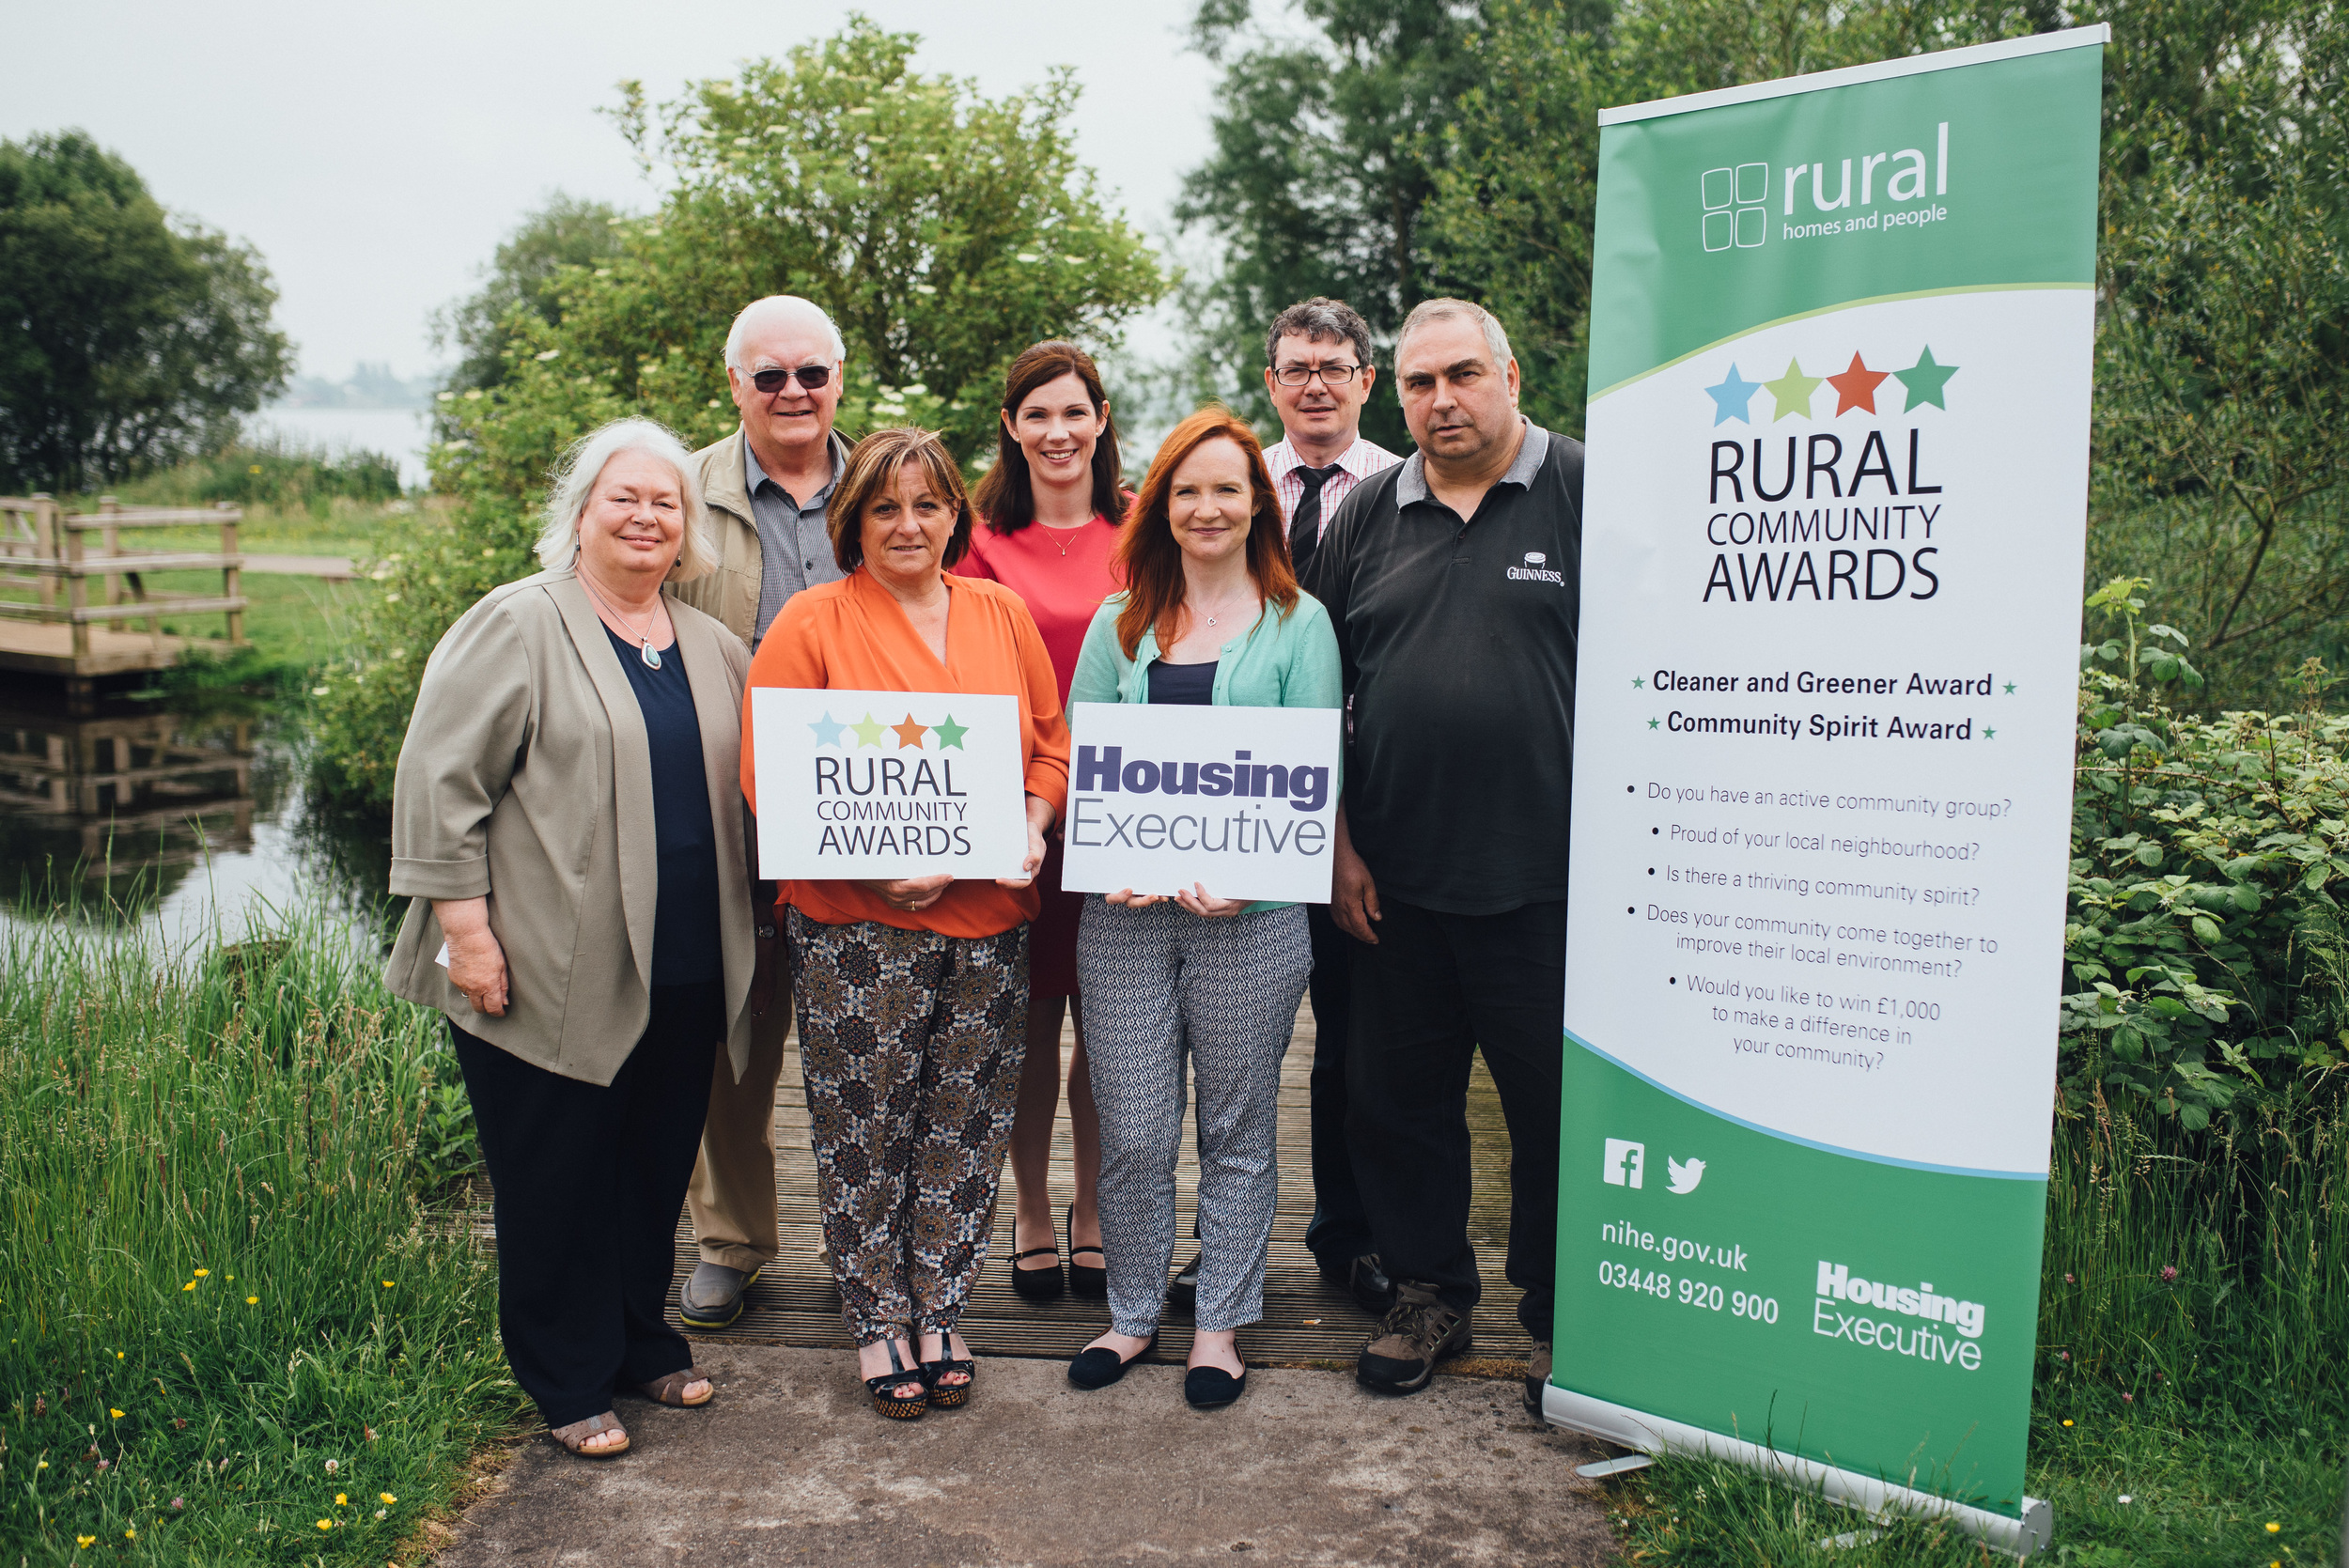 Launching the 2016 Housing Executive Rural Community Awards (l-r) Mary Watson (Camlough Community Association), Mike Jones (Castlerock Community Association), Eileen McGovern (Tirgan Community Association), Sinead Collins (Housing Executive), Orla McCann (Supporting Communities), Eoin McKinney (Housing Executive) and Clifford Wylie (Huntly Community Estates).